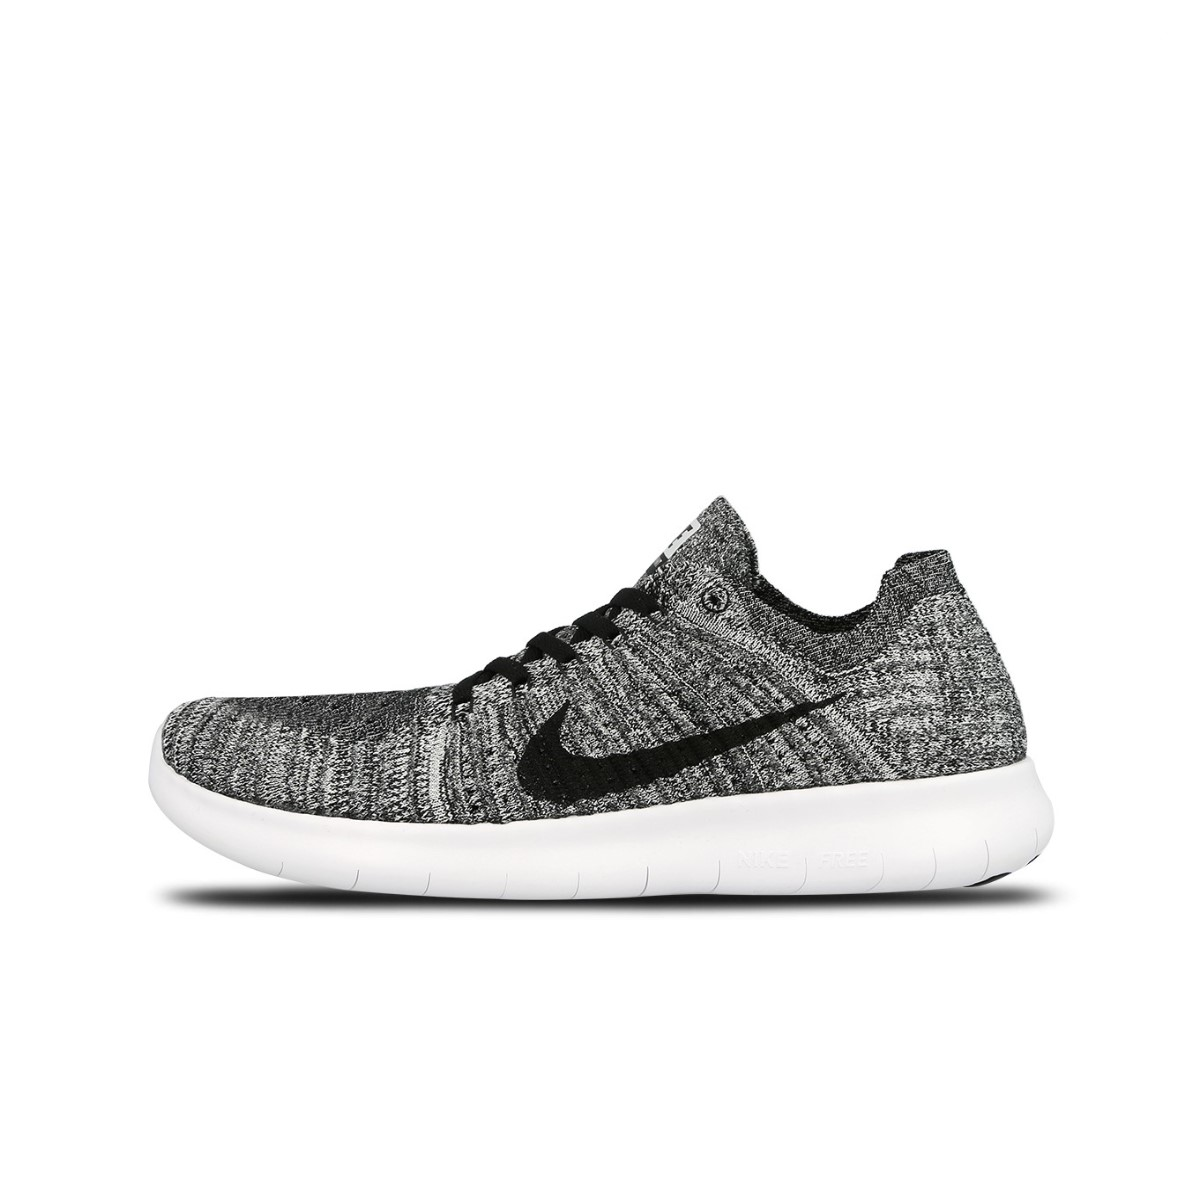 fbe230eb1f Nike Free RN Flyknit Men's Running Shoes | Grey - ALTON SPORTS